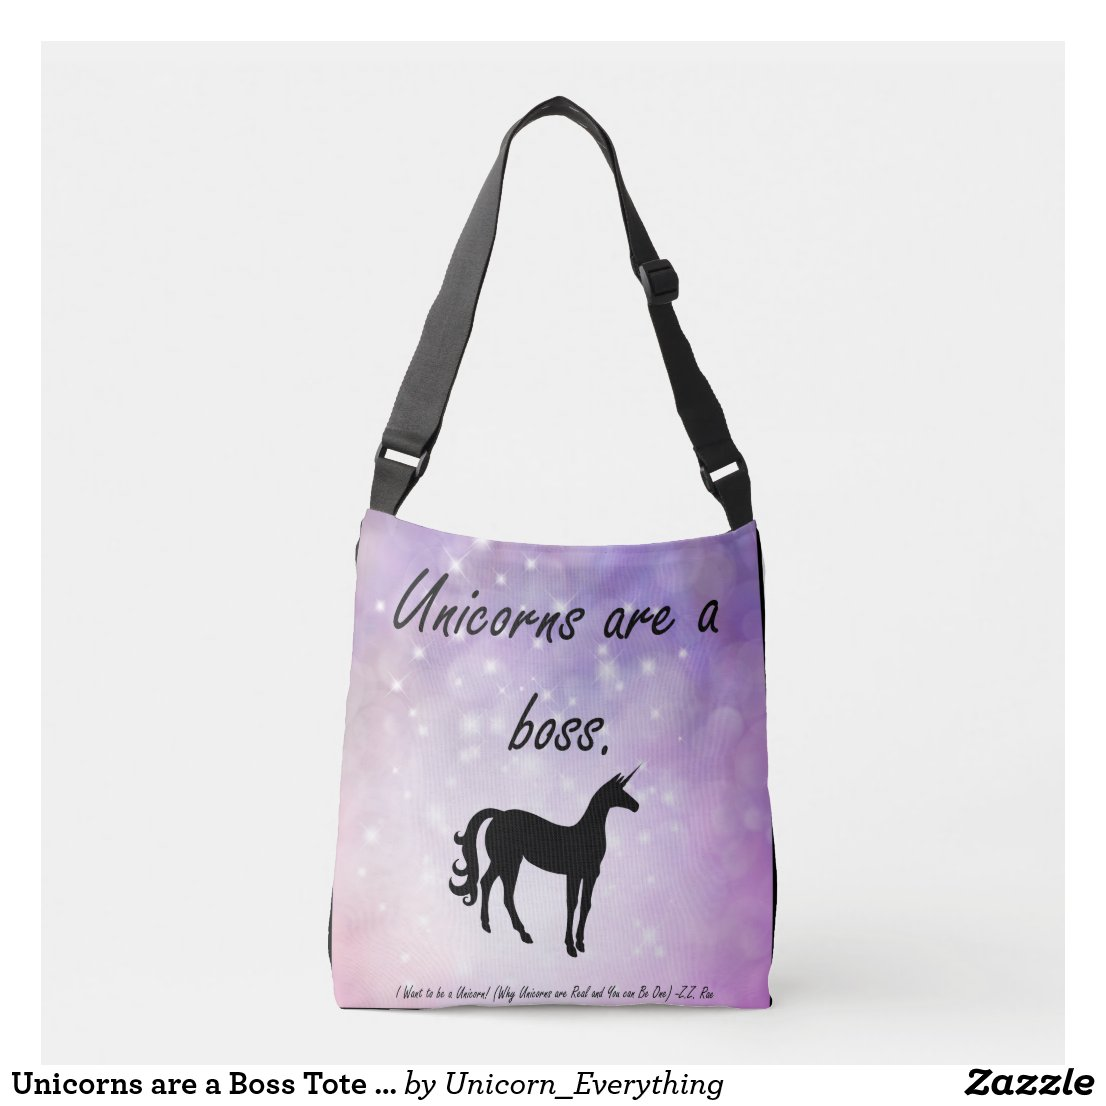 Unicorns are a Boss Tote bag